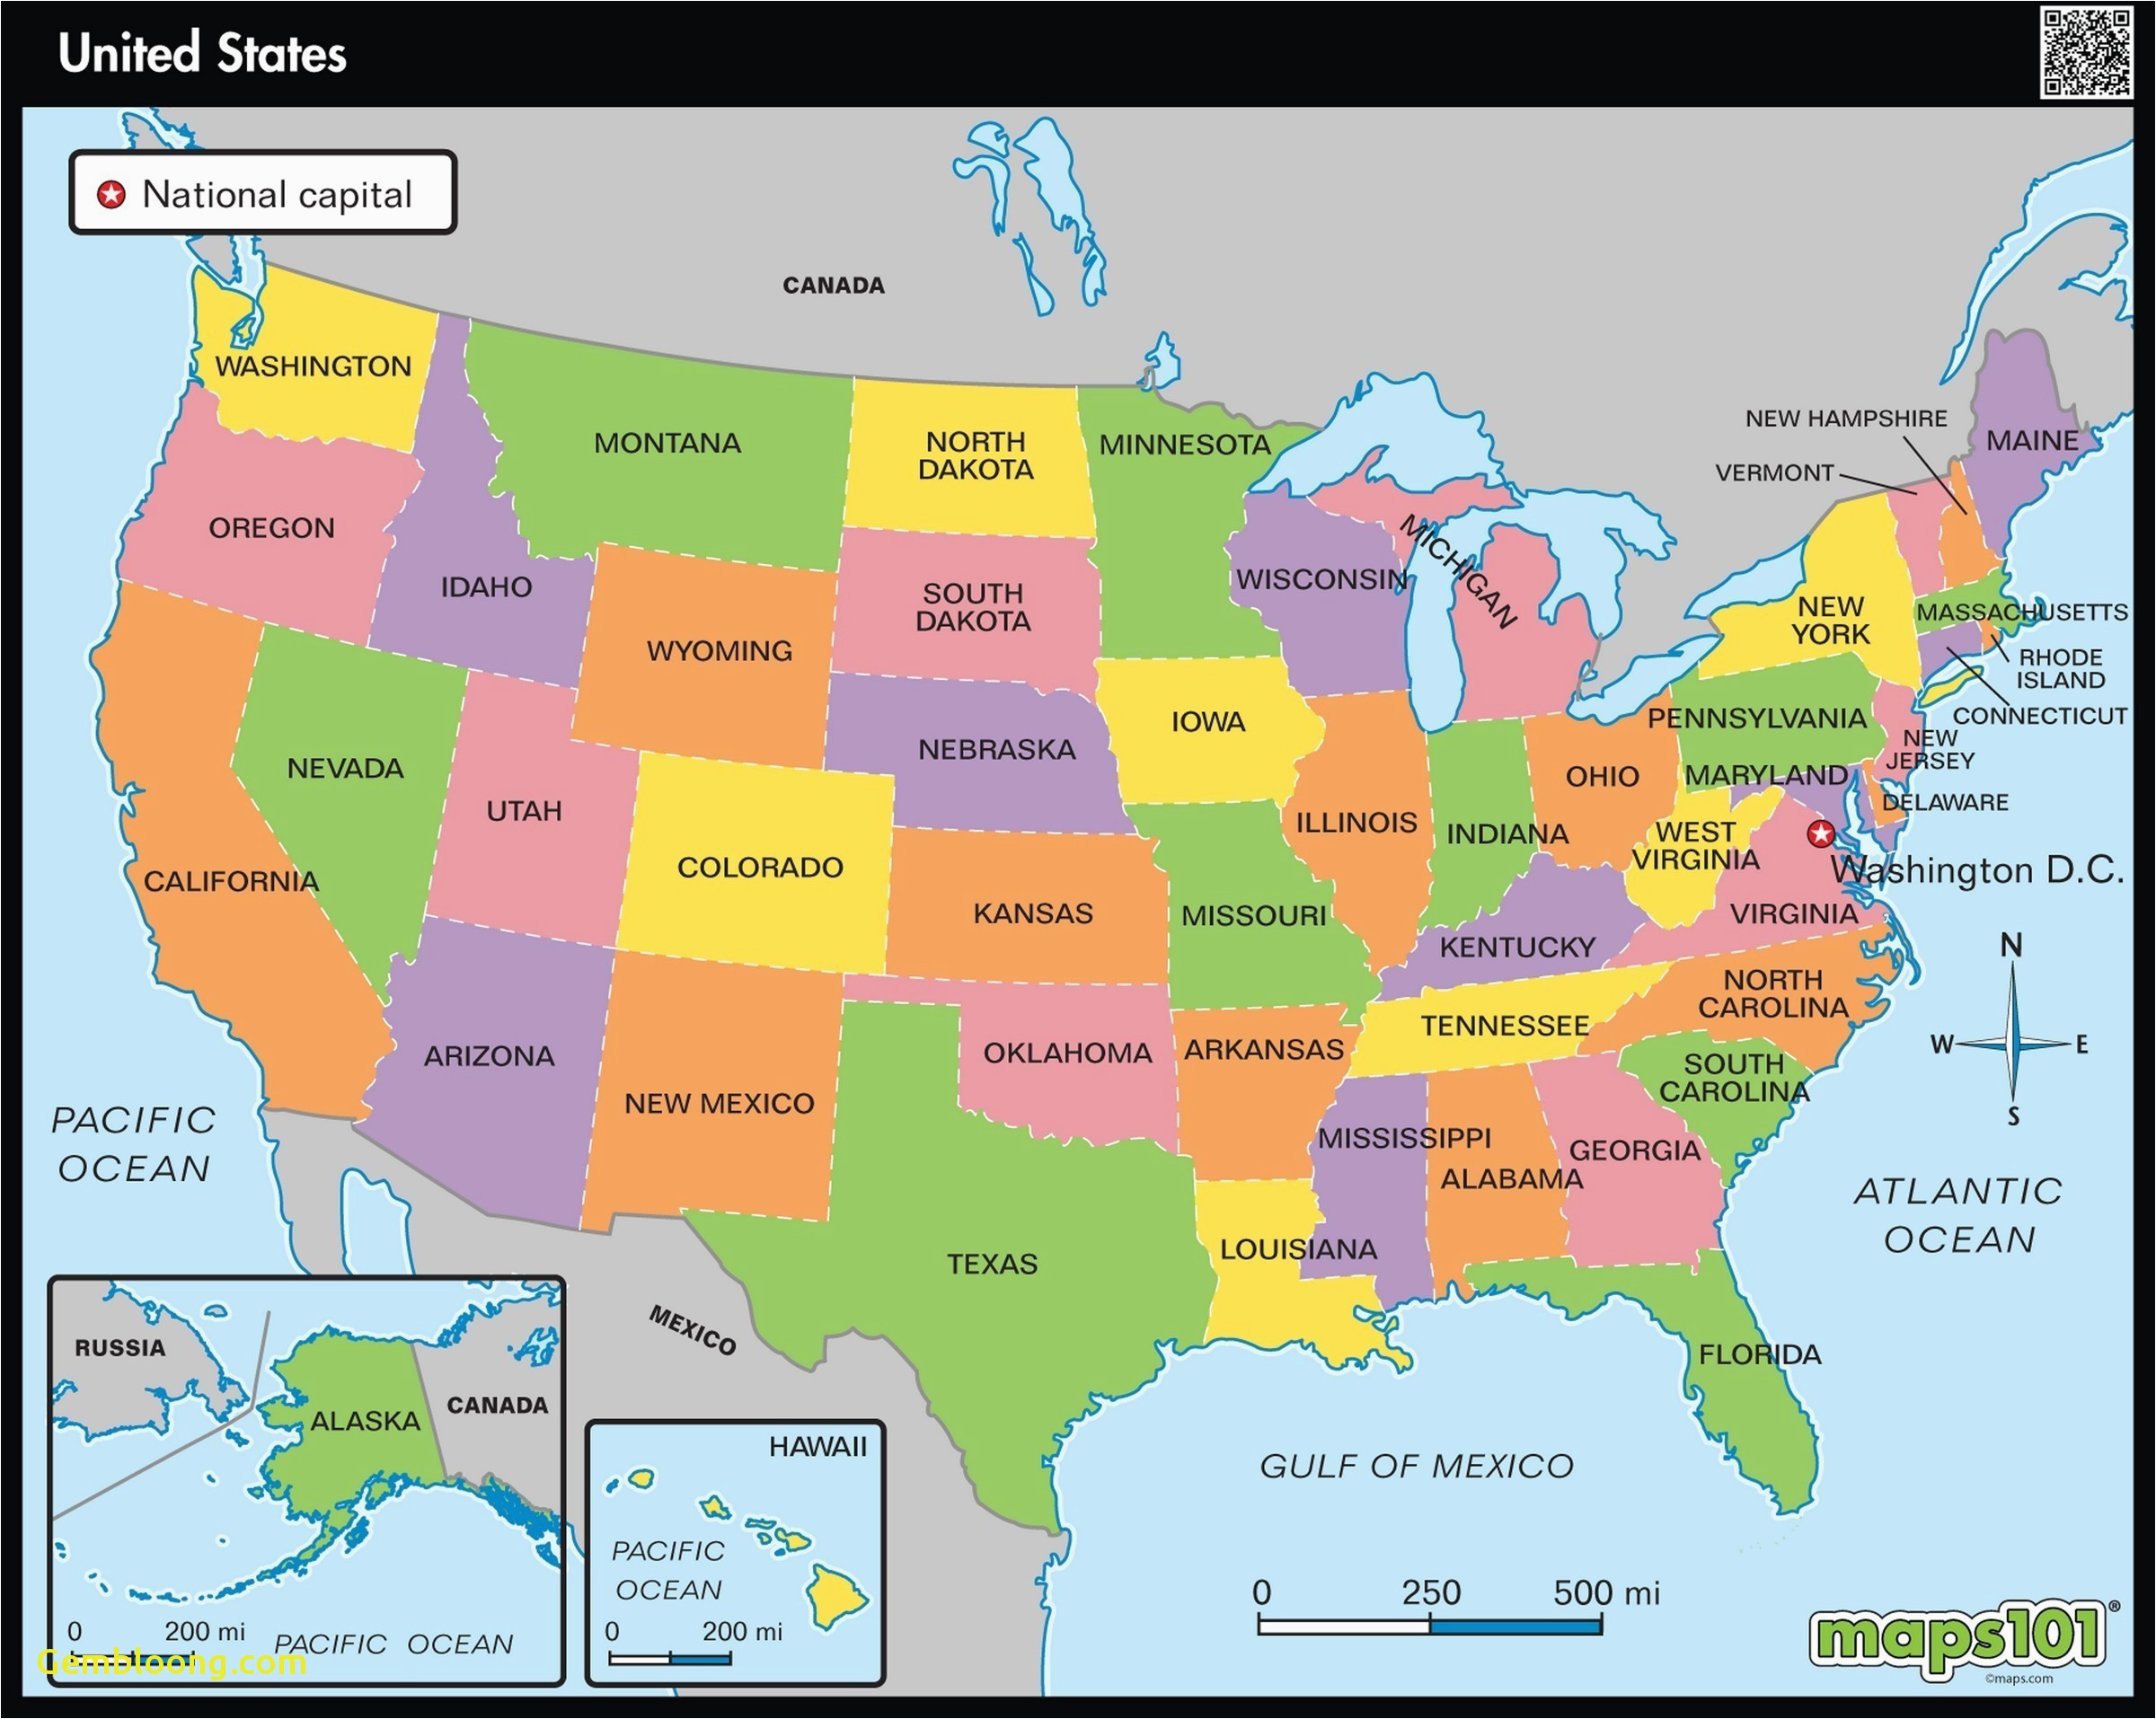 us map cities, map of guam cities, map of the texas cities, map of uk cities, map of washington cities, map of the counties in indiana, map of north america cities, texas united states cities, map of guyana cities, state maps with cities, map of the north central states, map of the western territories, map of the disney world resort, map of central america cities, map of cities and towns, map of india cities, map of the former soviet republics, map of the florida cities, map of asia cities, map of the midwest cities, on cities of the united states map